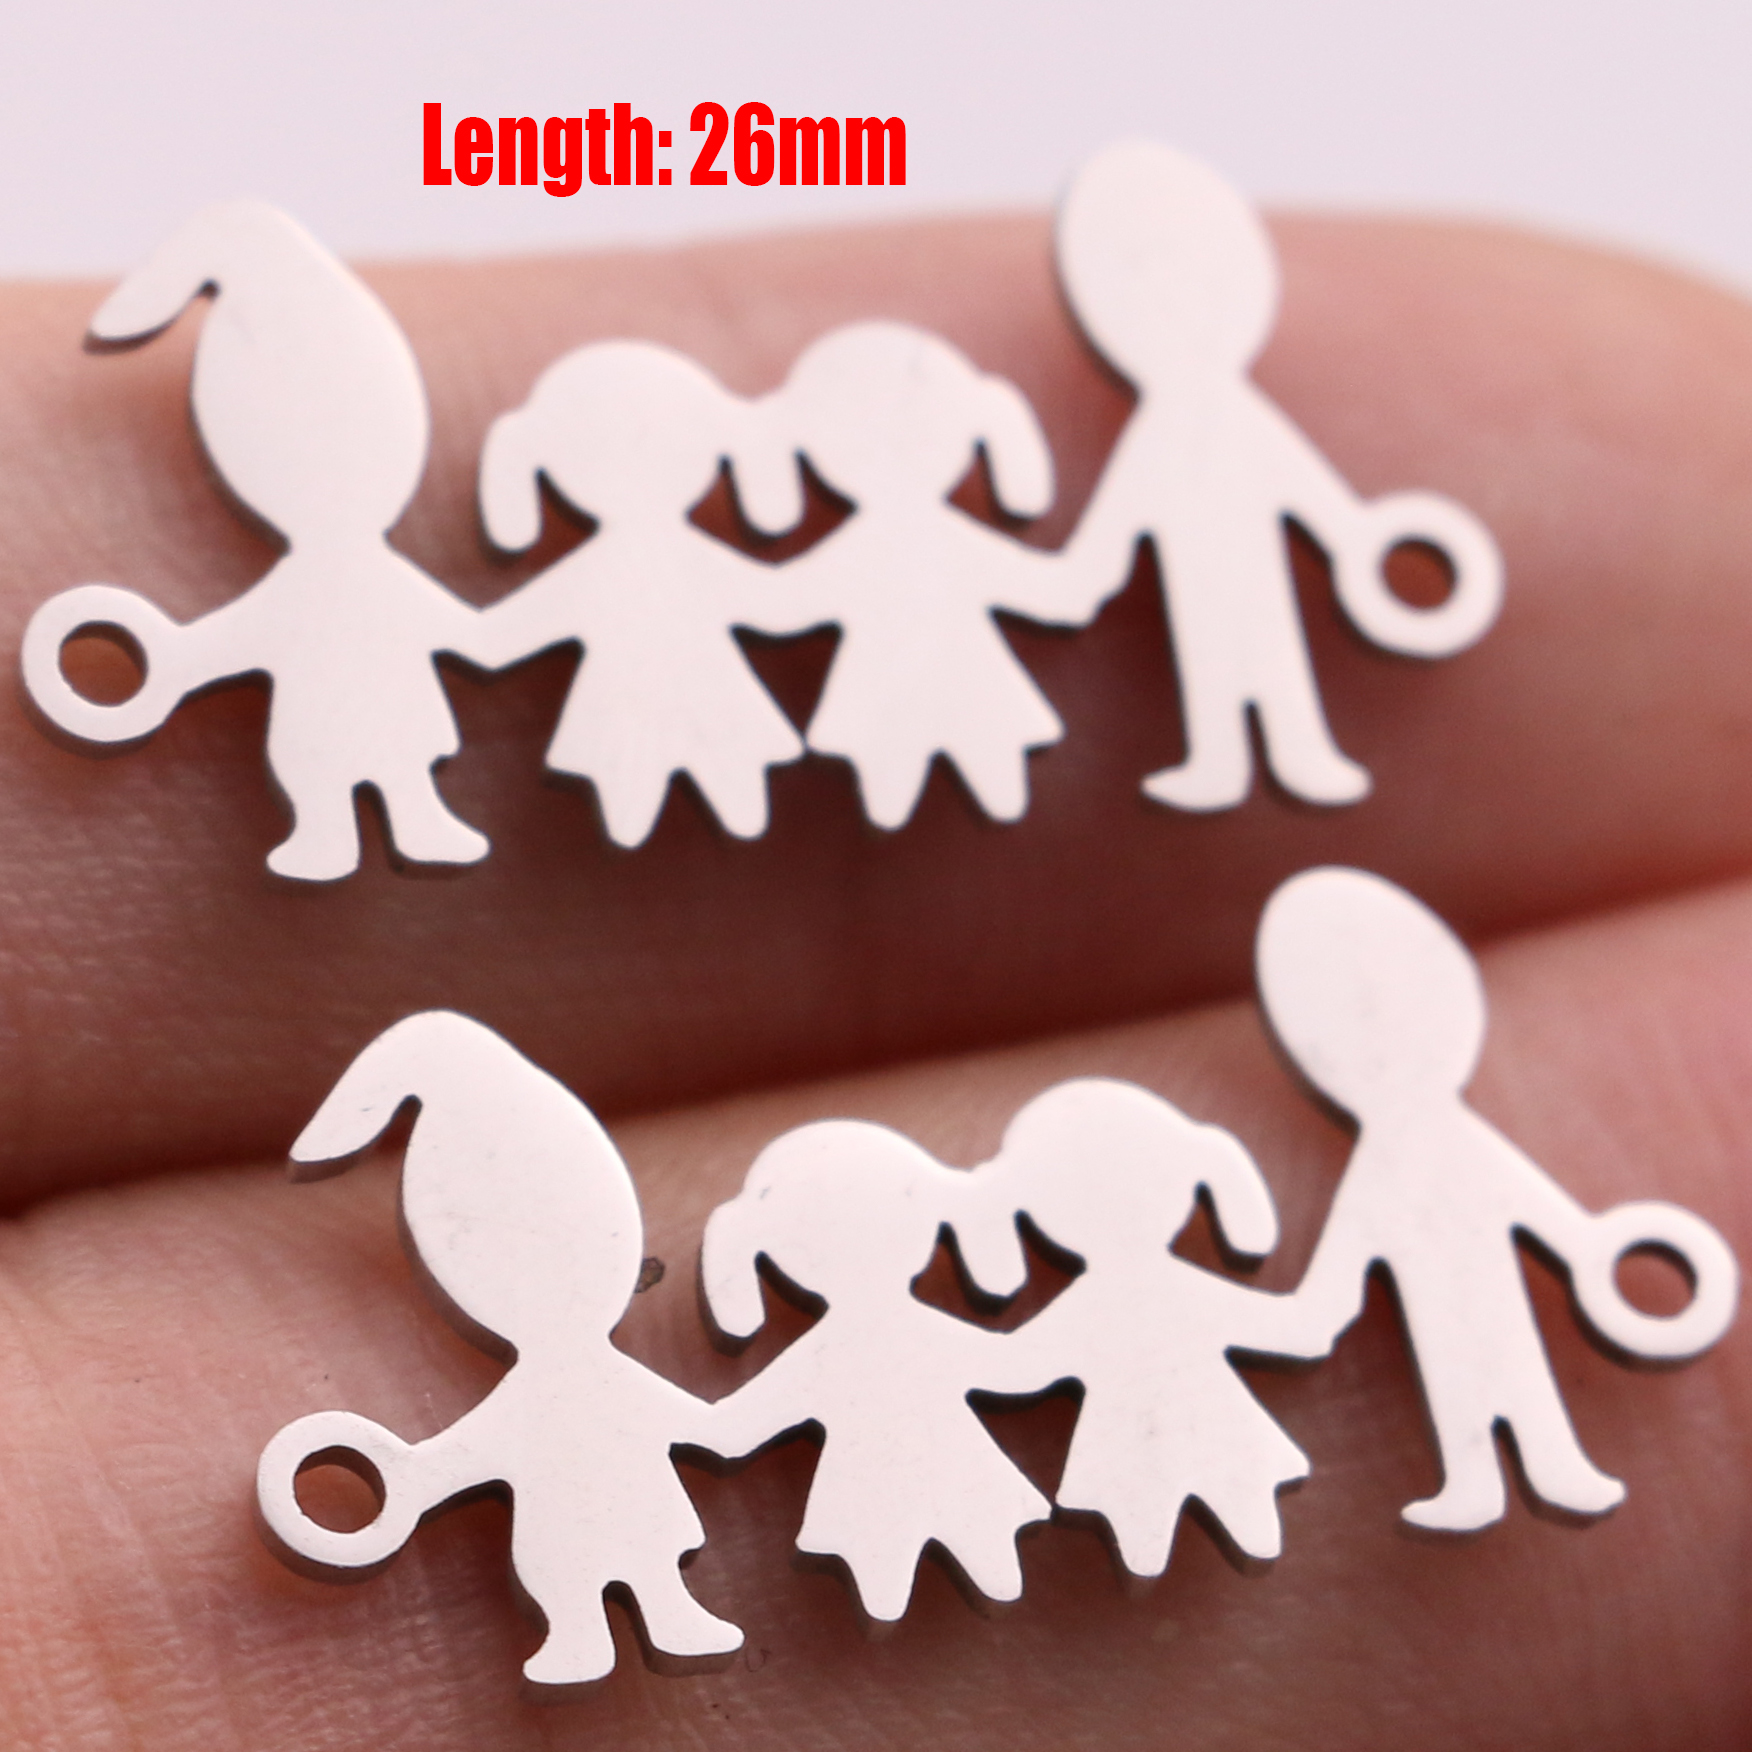 5pcs Family Chain Stainless Steel Pendant Necklace Parents and Children Necklaces Gold/steel Jewelry Gift for Mom Dad New Twice - Цвет: Steel 28